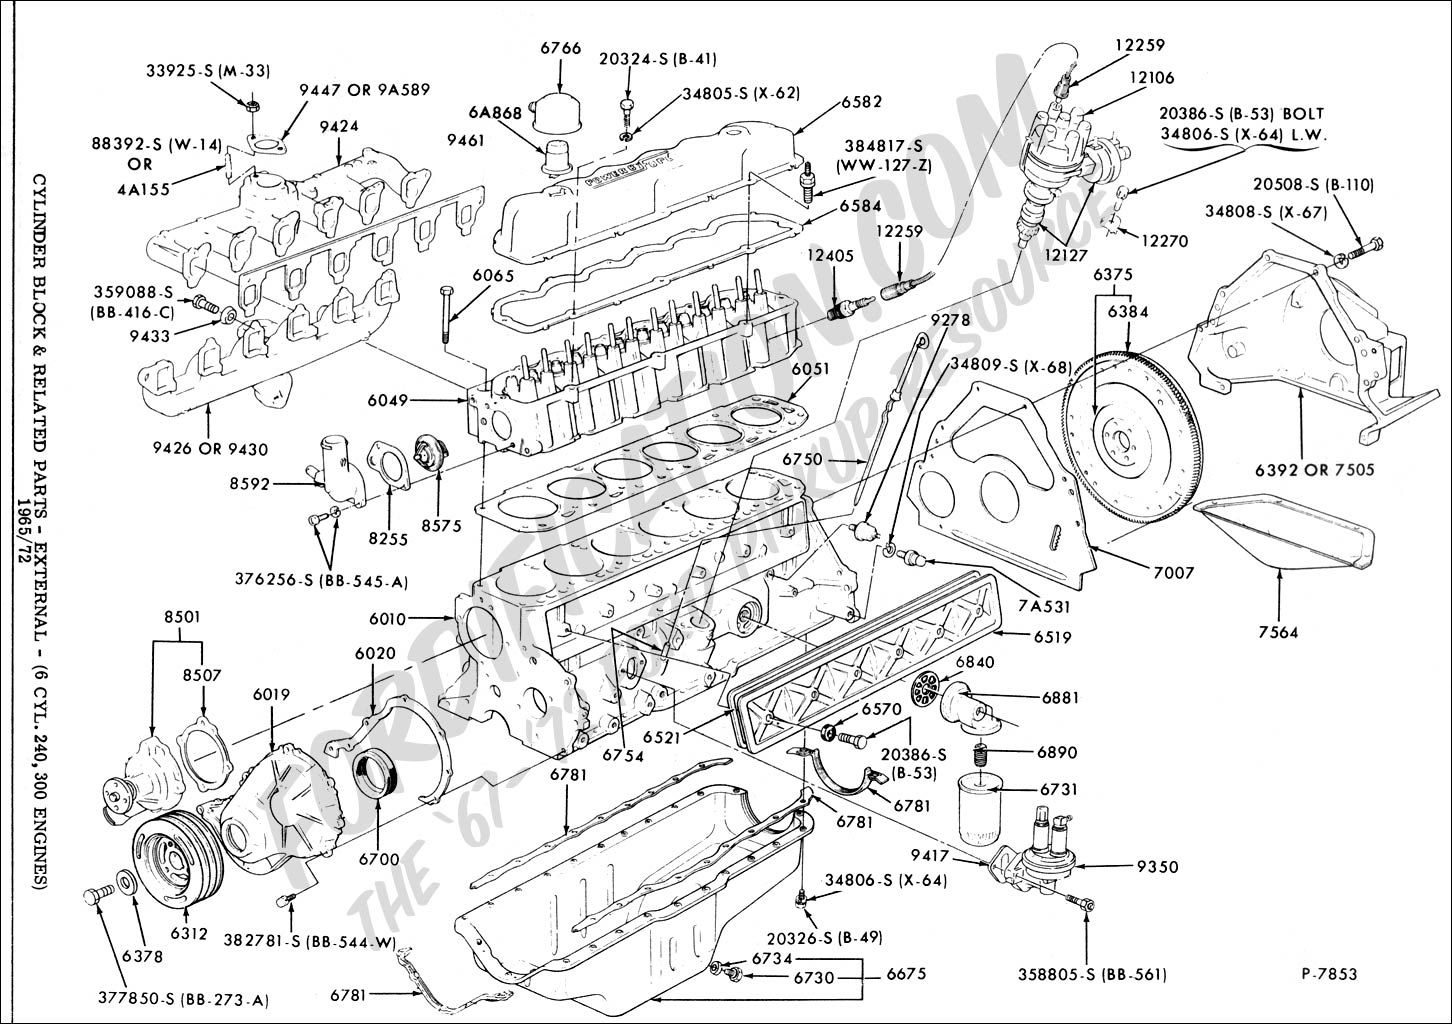 7 3l Engine Harness Diagram Wiring Diagrams Ford Diesel 2001 Powerstroke Library Rh 97 Evitta De 73